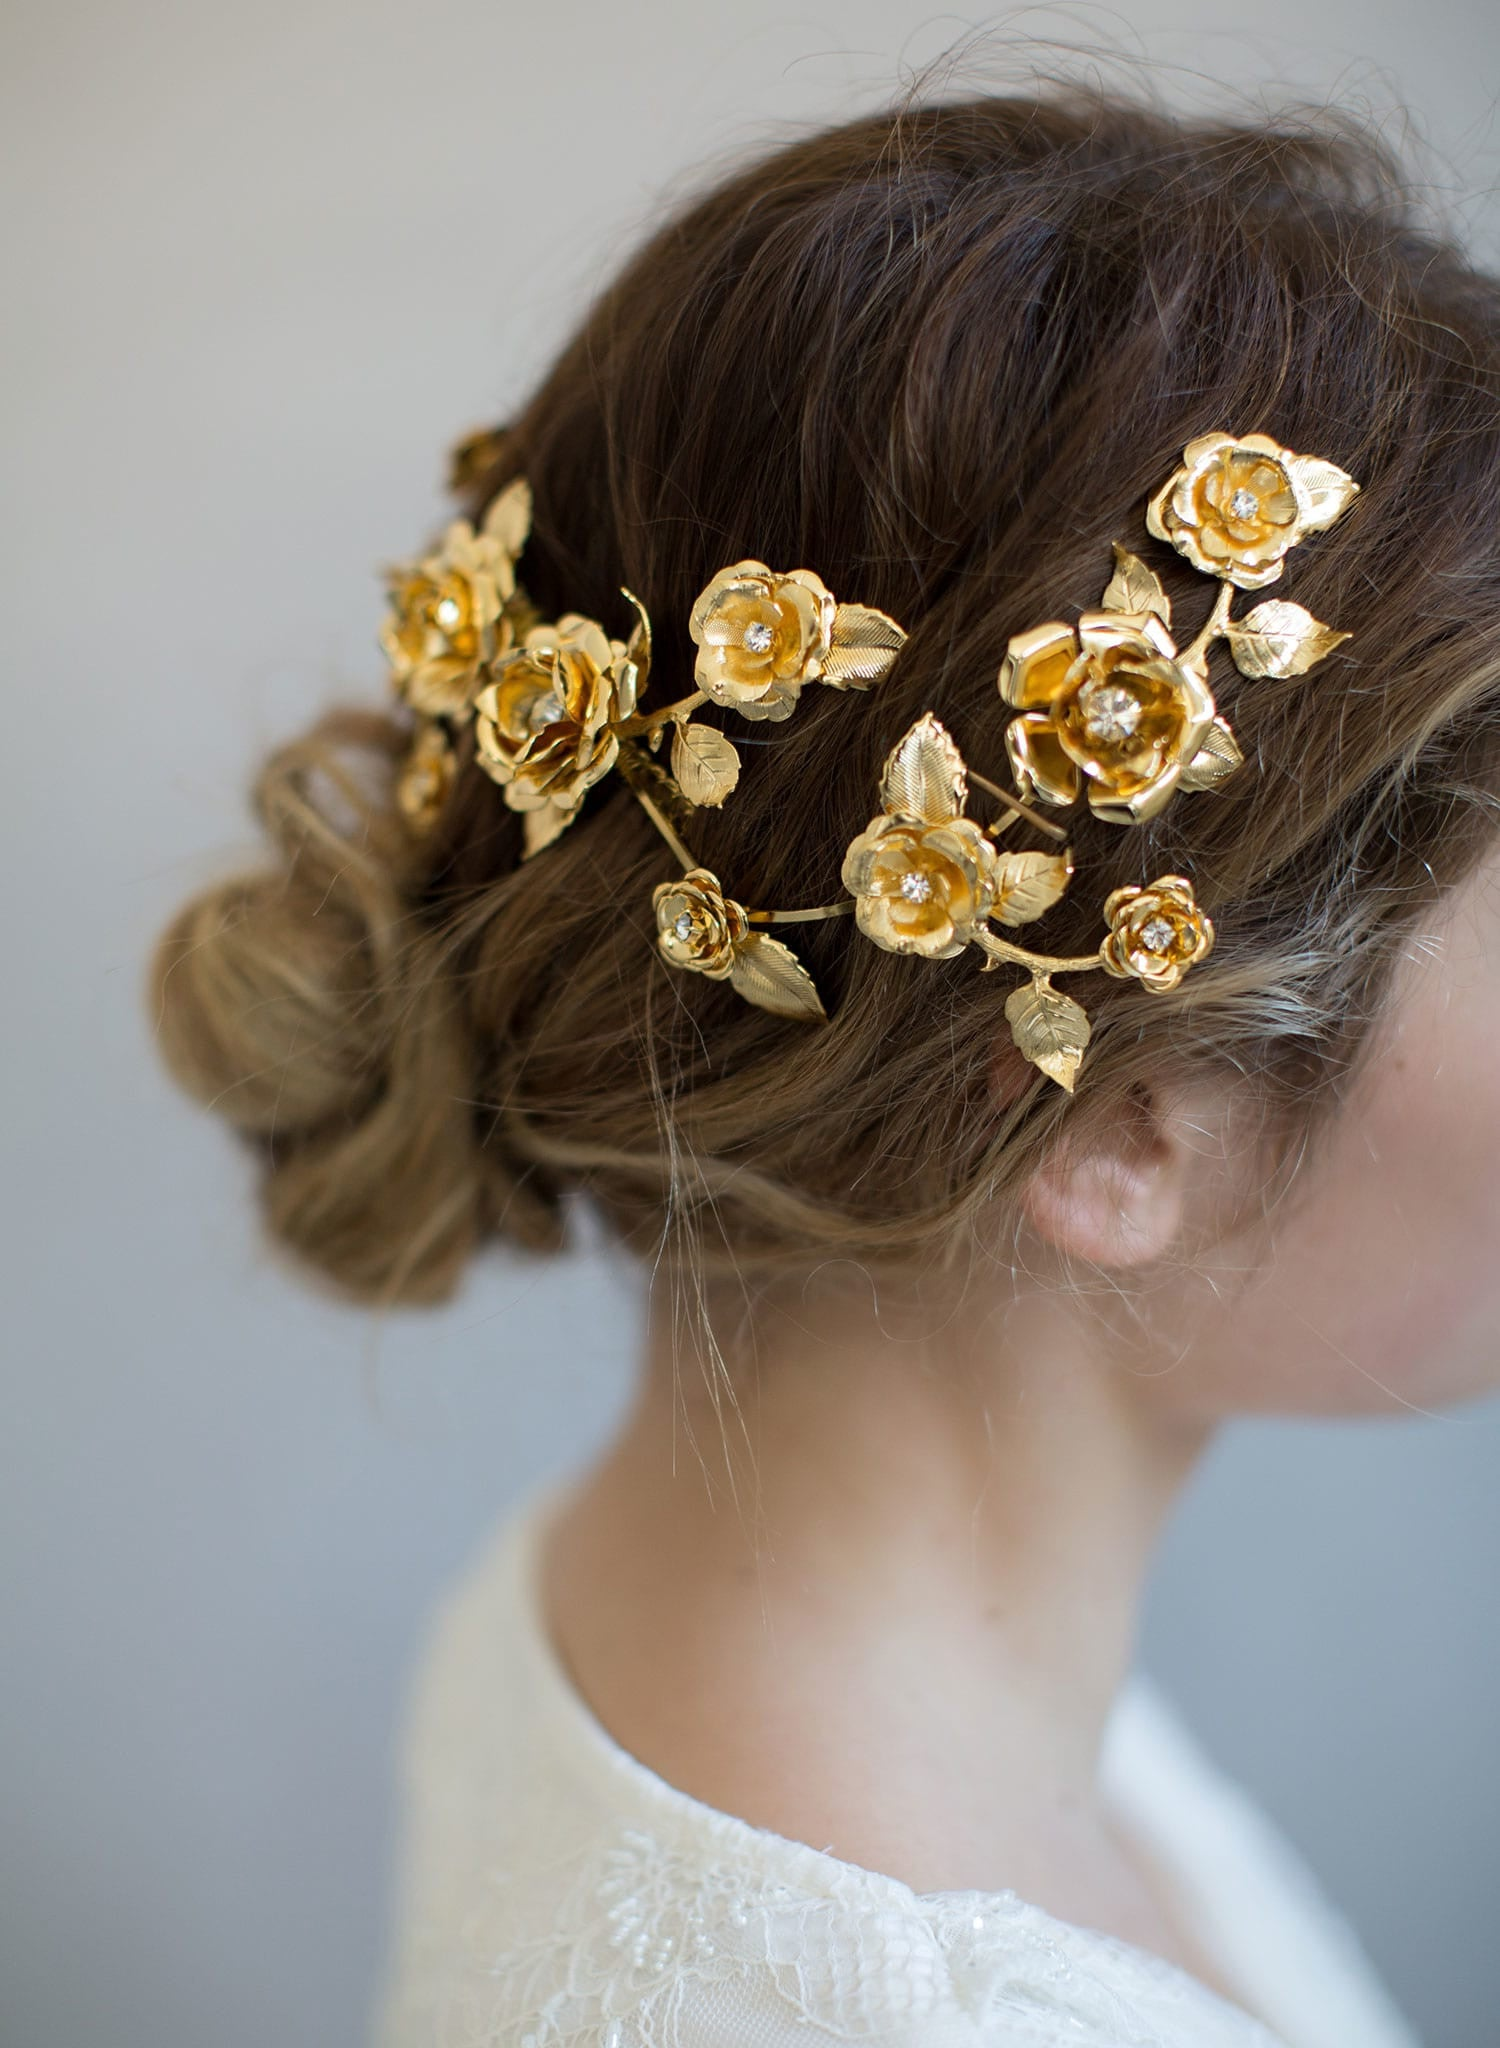 Br Bridal Headpieces Twigs And Honey -  floral bridal headpiece gold plated hair adornment floral inspired twigs and honey